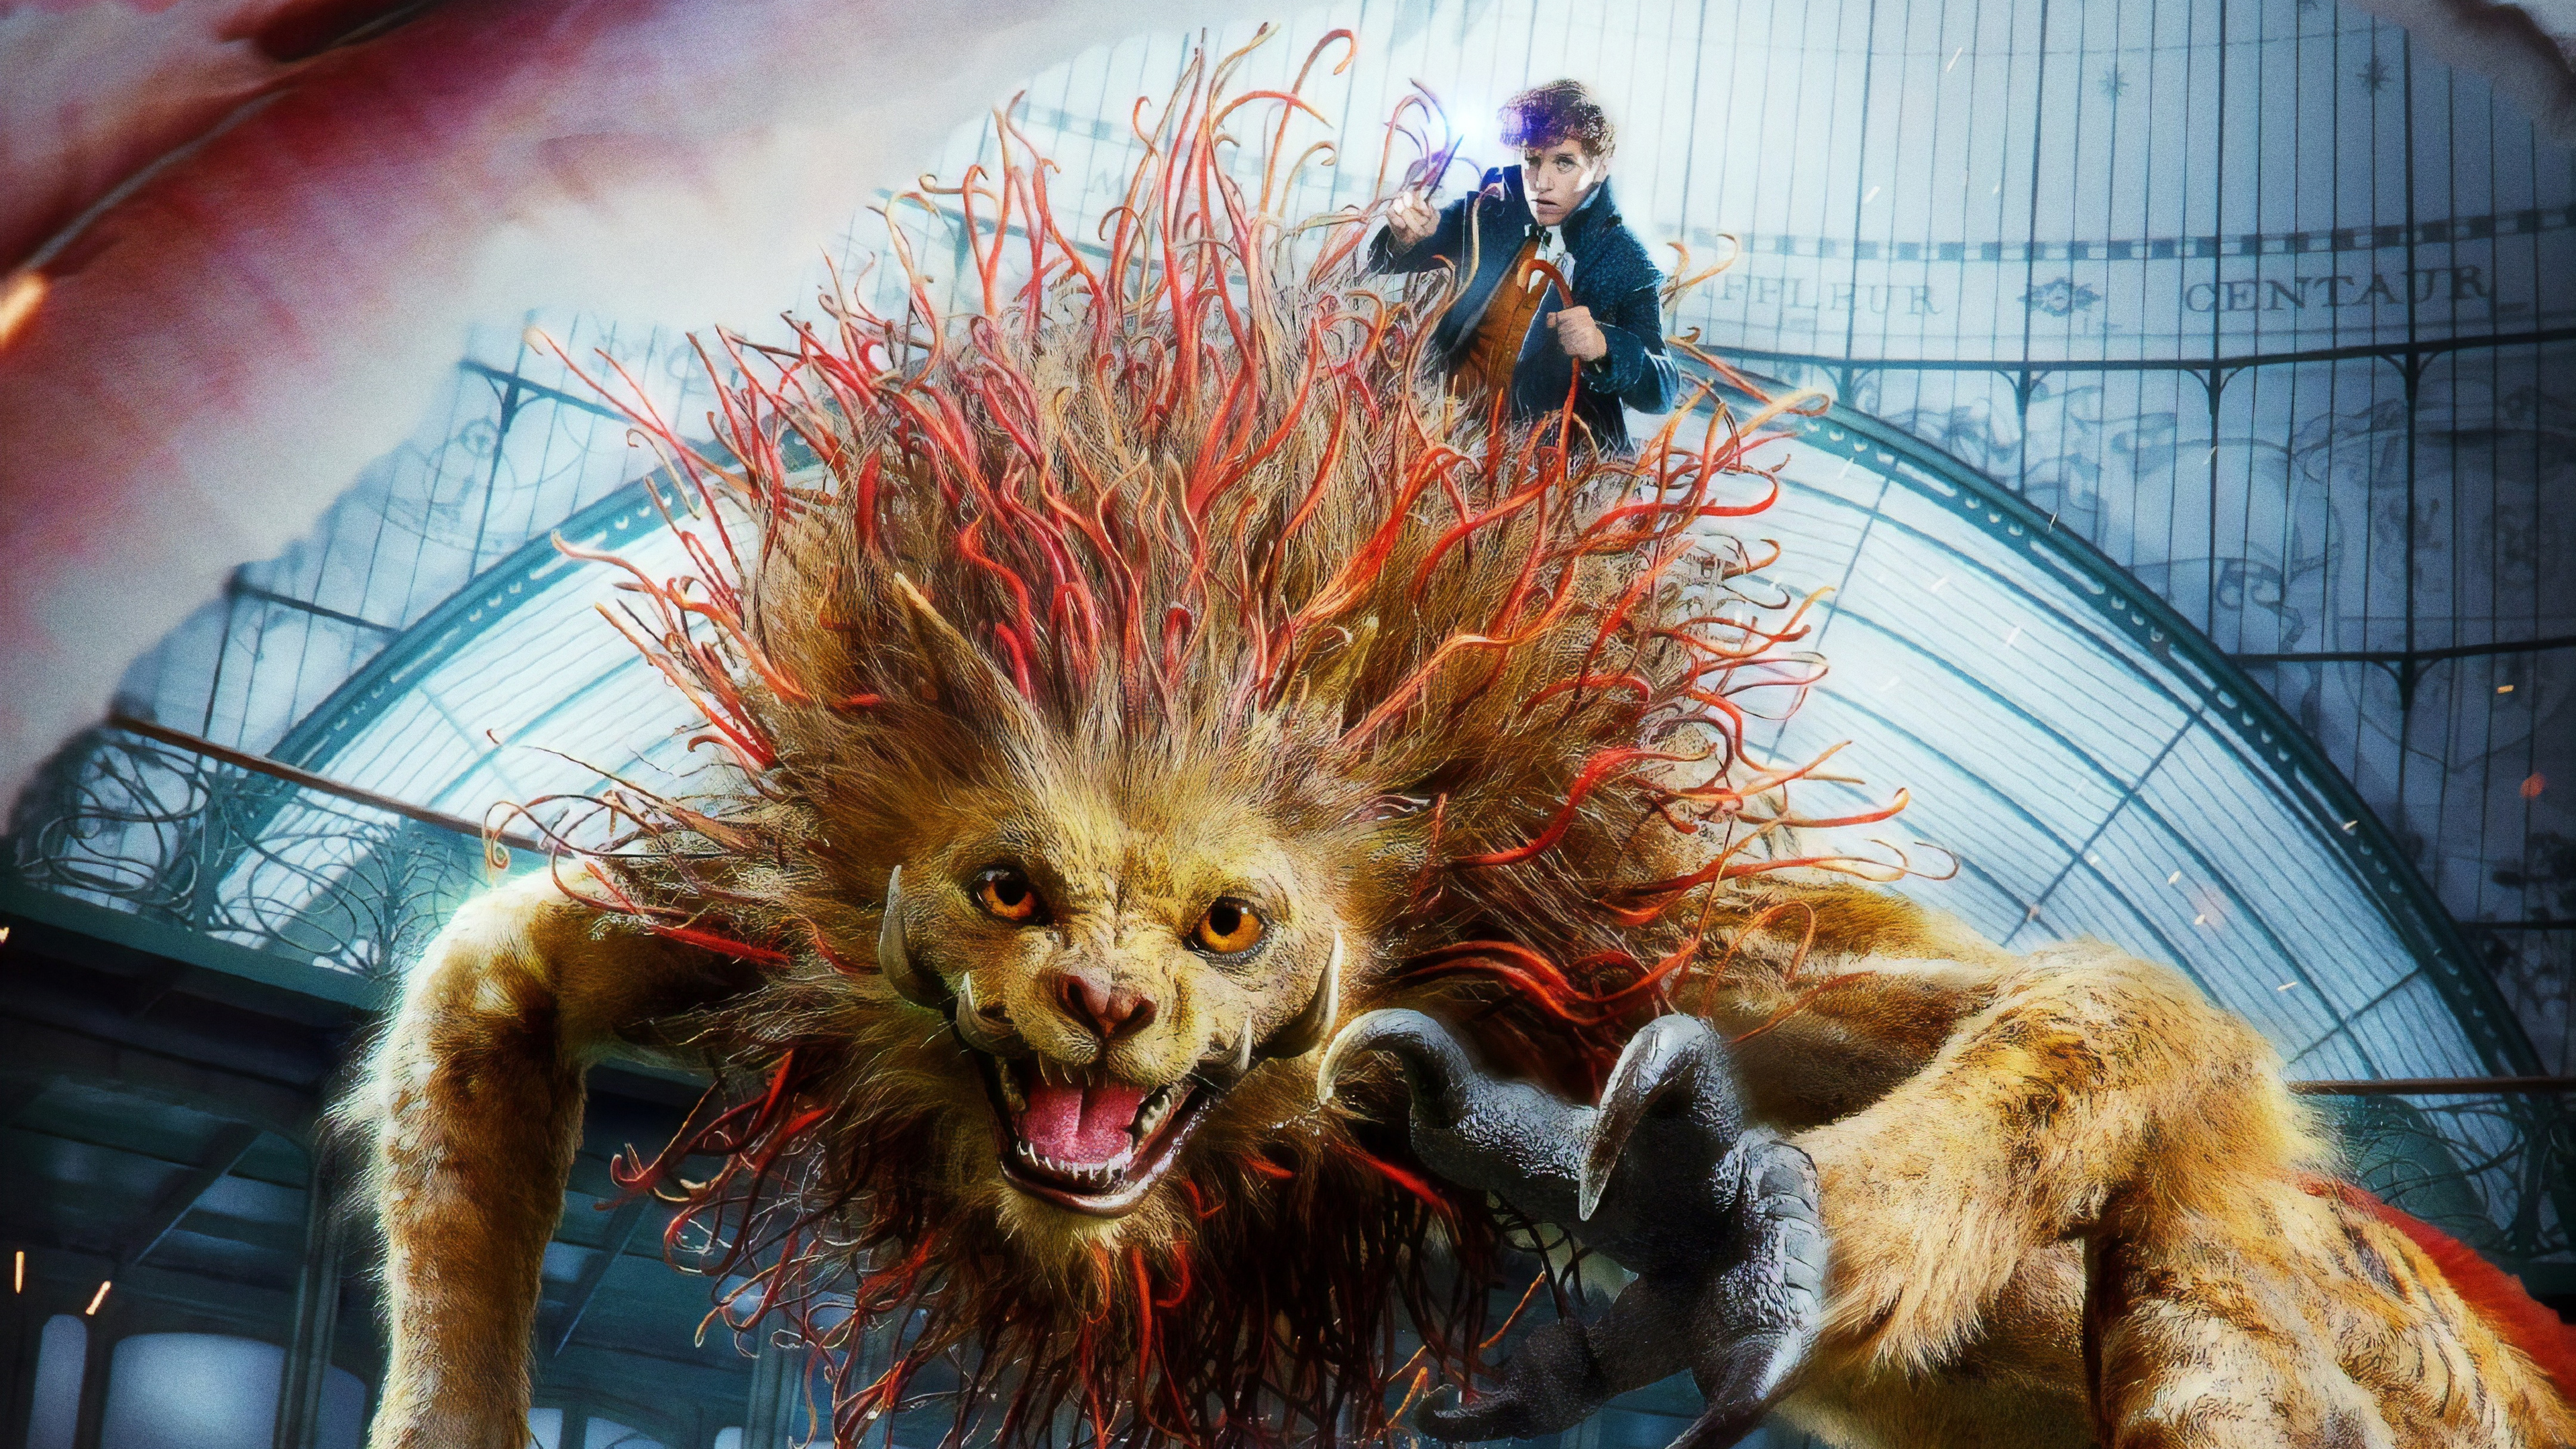 fantastic beasts the crimes of grindelwald 2018 4k 1543105509 - Fantastic Beasts The Crimes Of Grindelwald 2018 4k - poster wallpapers, movies wallpapers, hd-wallpapers, fantastic beasts the crimes of grindelwald wallpapers, fantastic beasts 2 wallpapers, 4k-wallpapers, 2018-movies-wallpapers